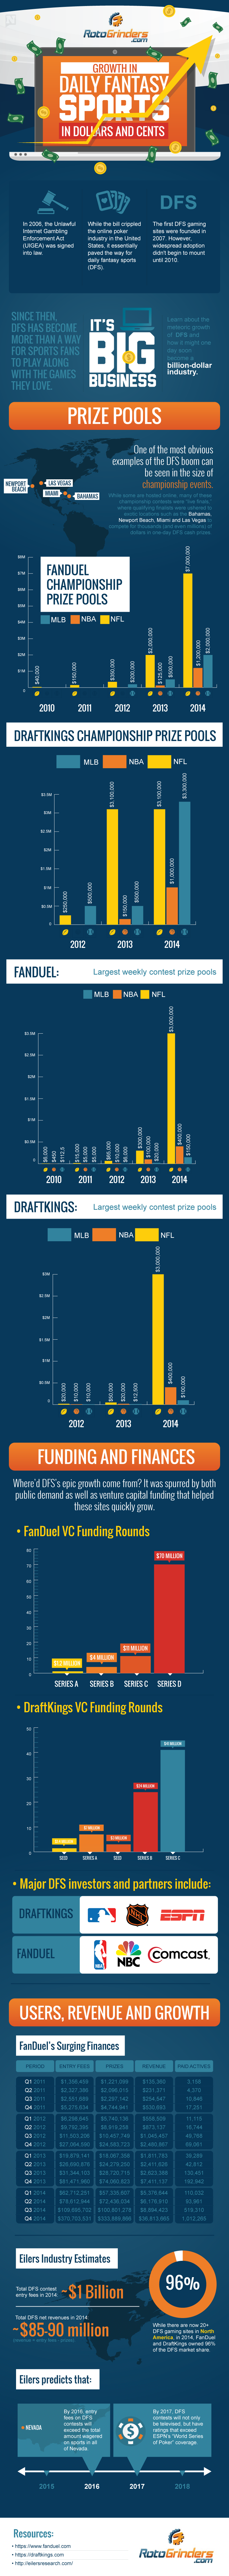 The Growth of Daily Fantasy Sports